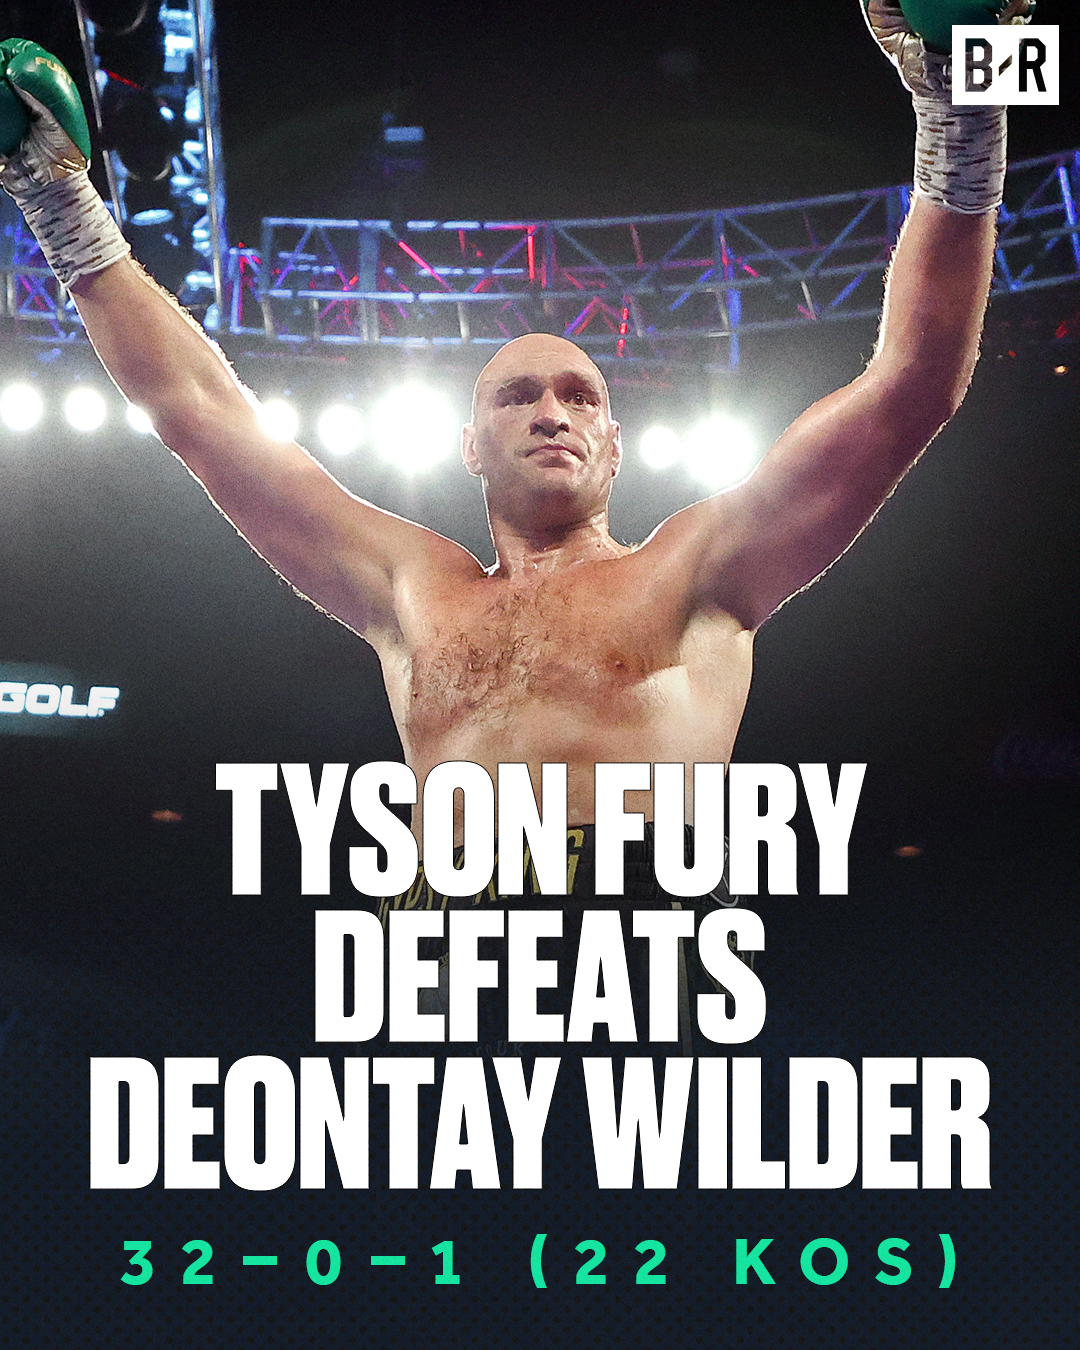 Tyson Fury Defeats Deontay Wilder in 11th round to retain WBC (video)